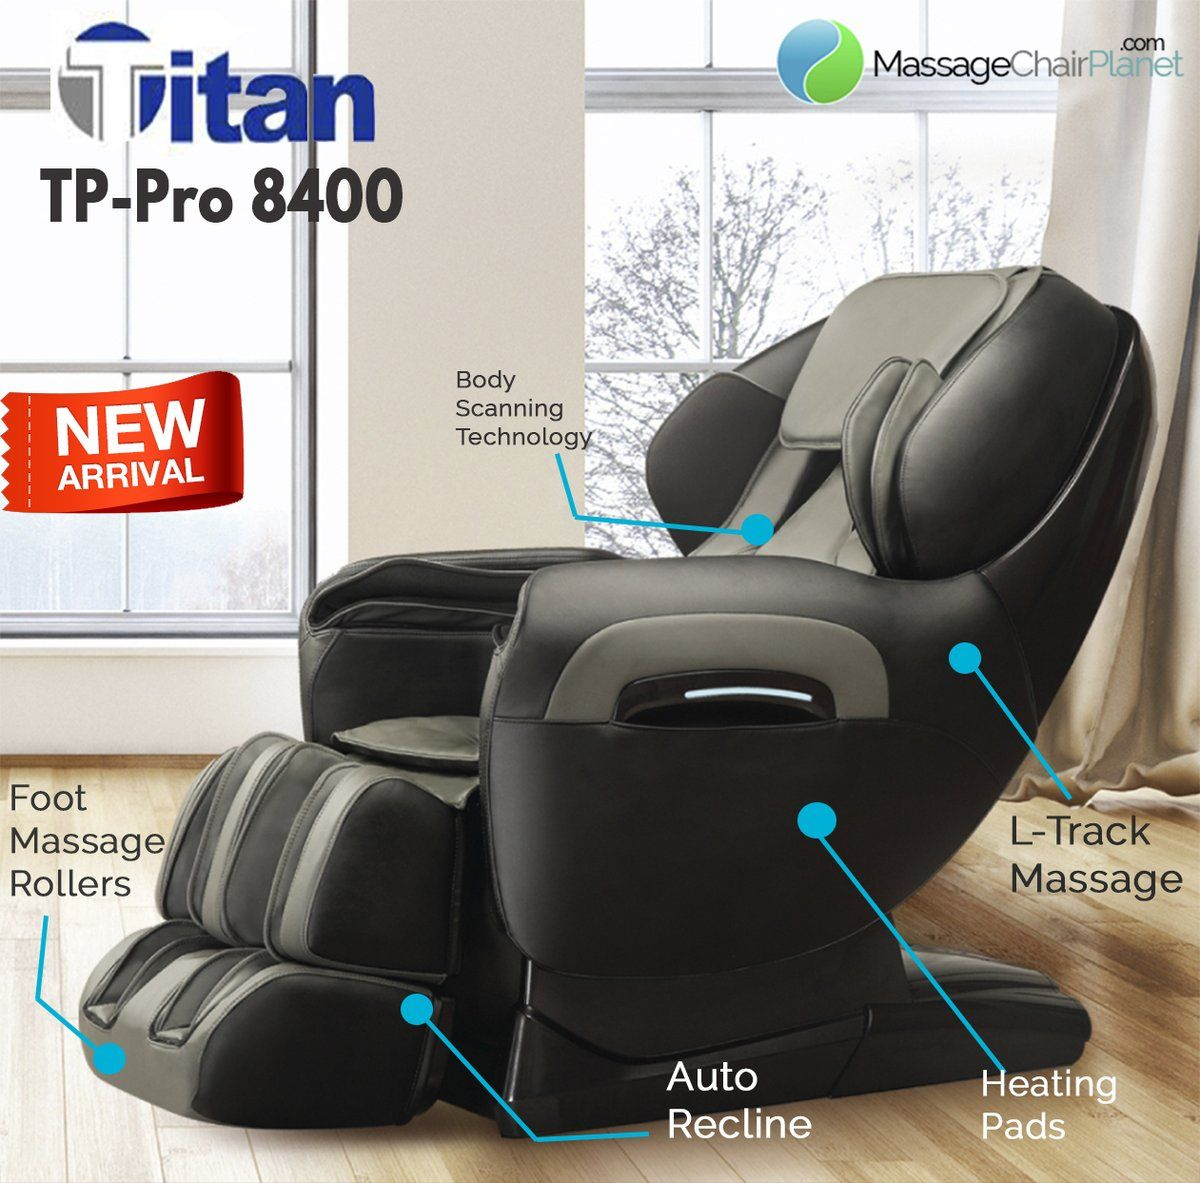 Find out more about the titan tppro 8400 massage chair